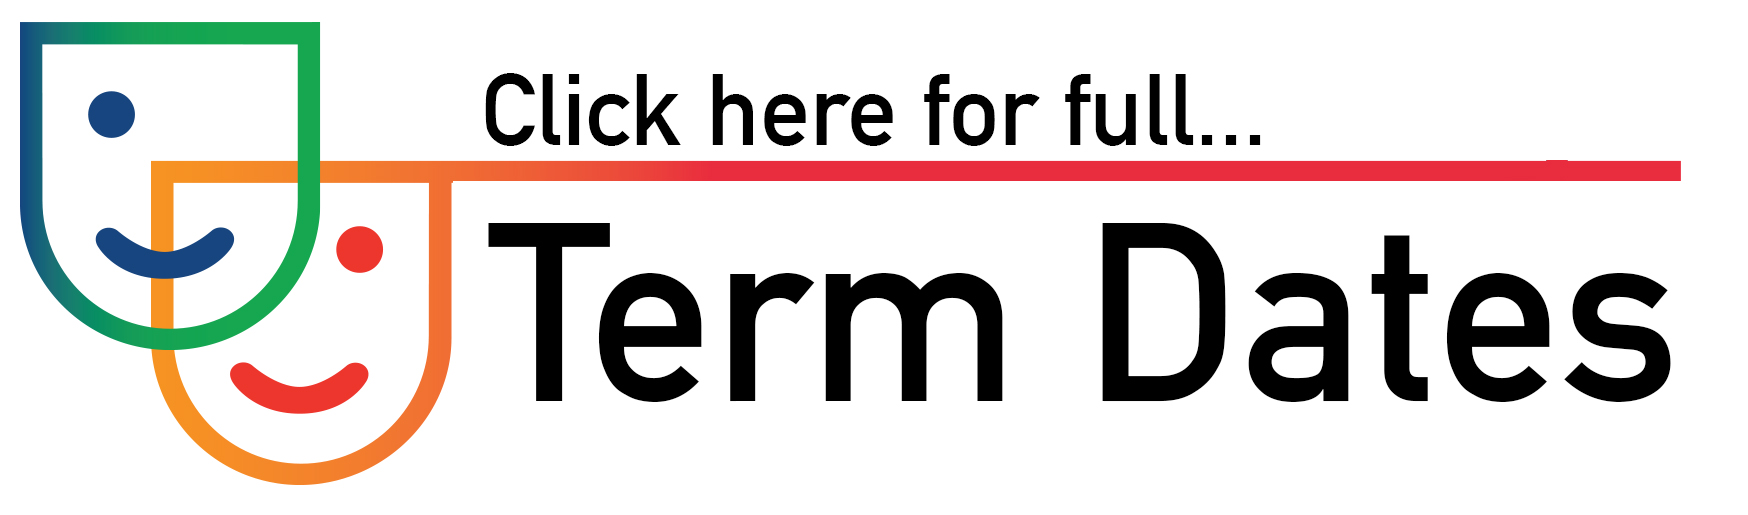 Click here for Term Dates